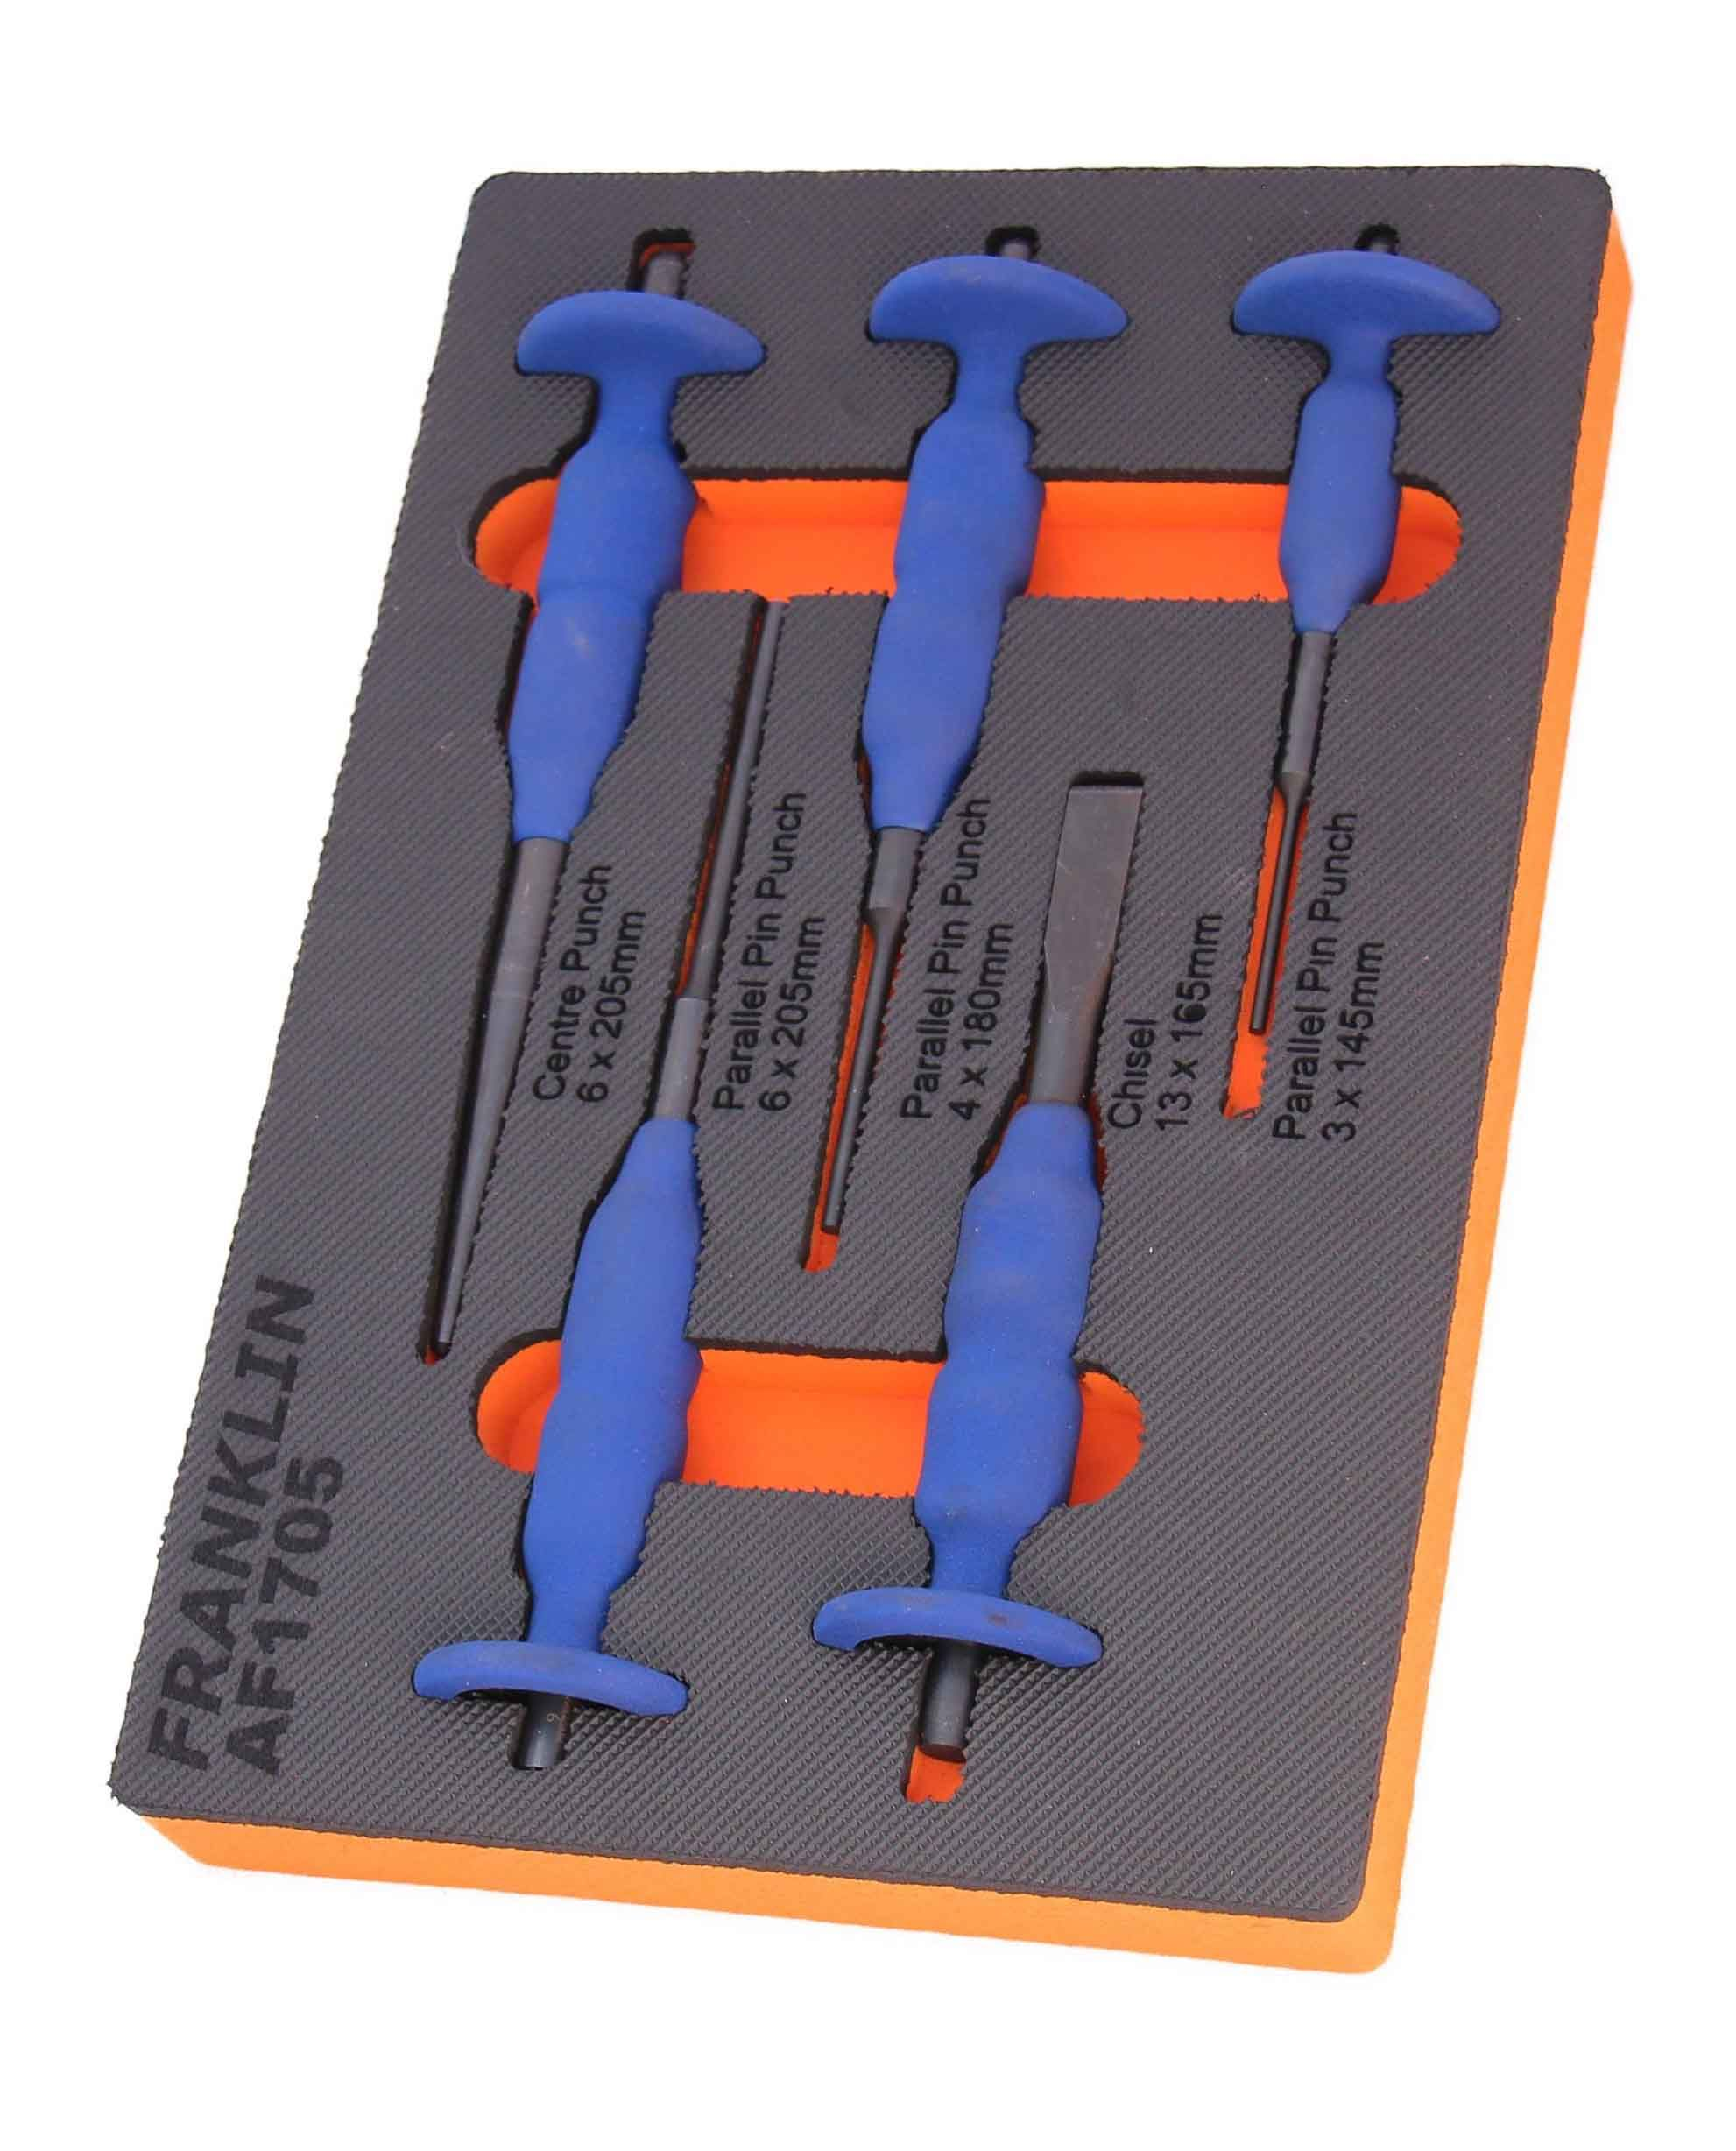 Franklin 5 Piece Chisel & Punch Set